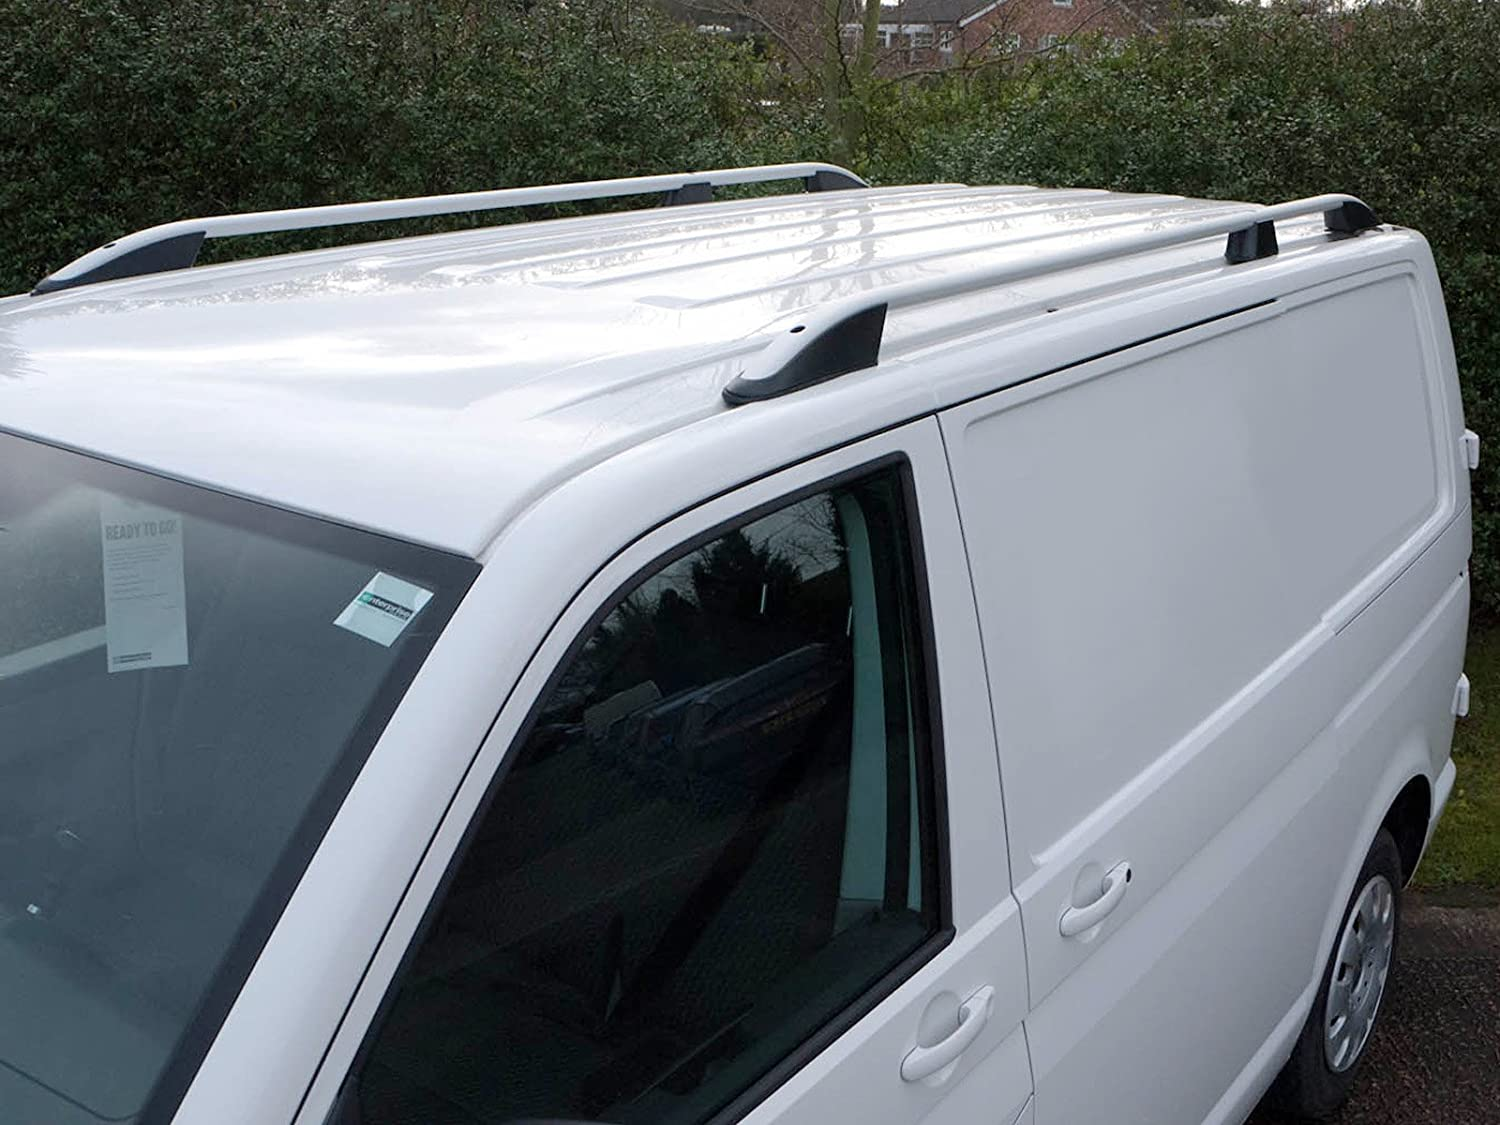 Van Demon Aluminium Roof Rails Pair Roof Bars Fits VW Transporter T5 (03-15) [SWB]